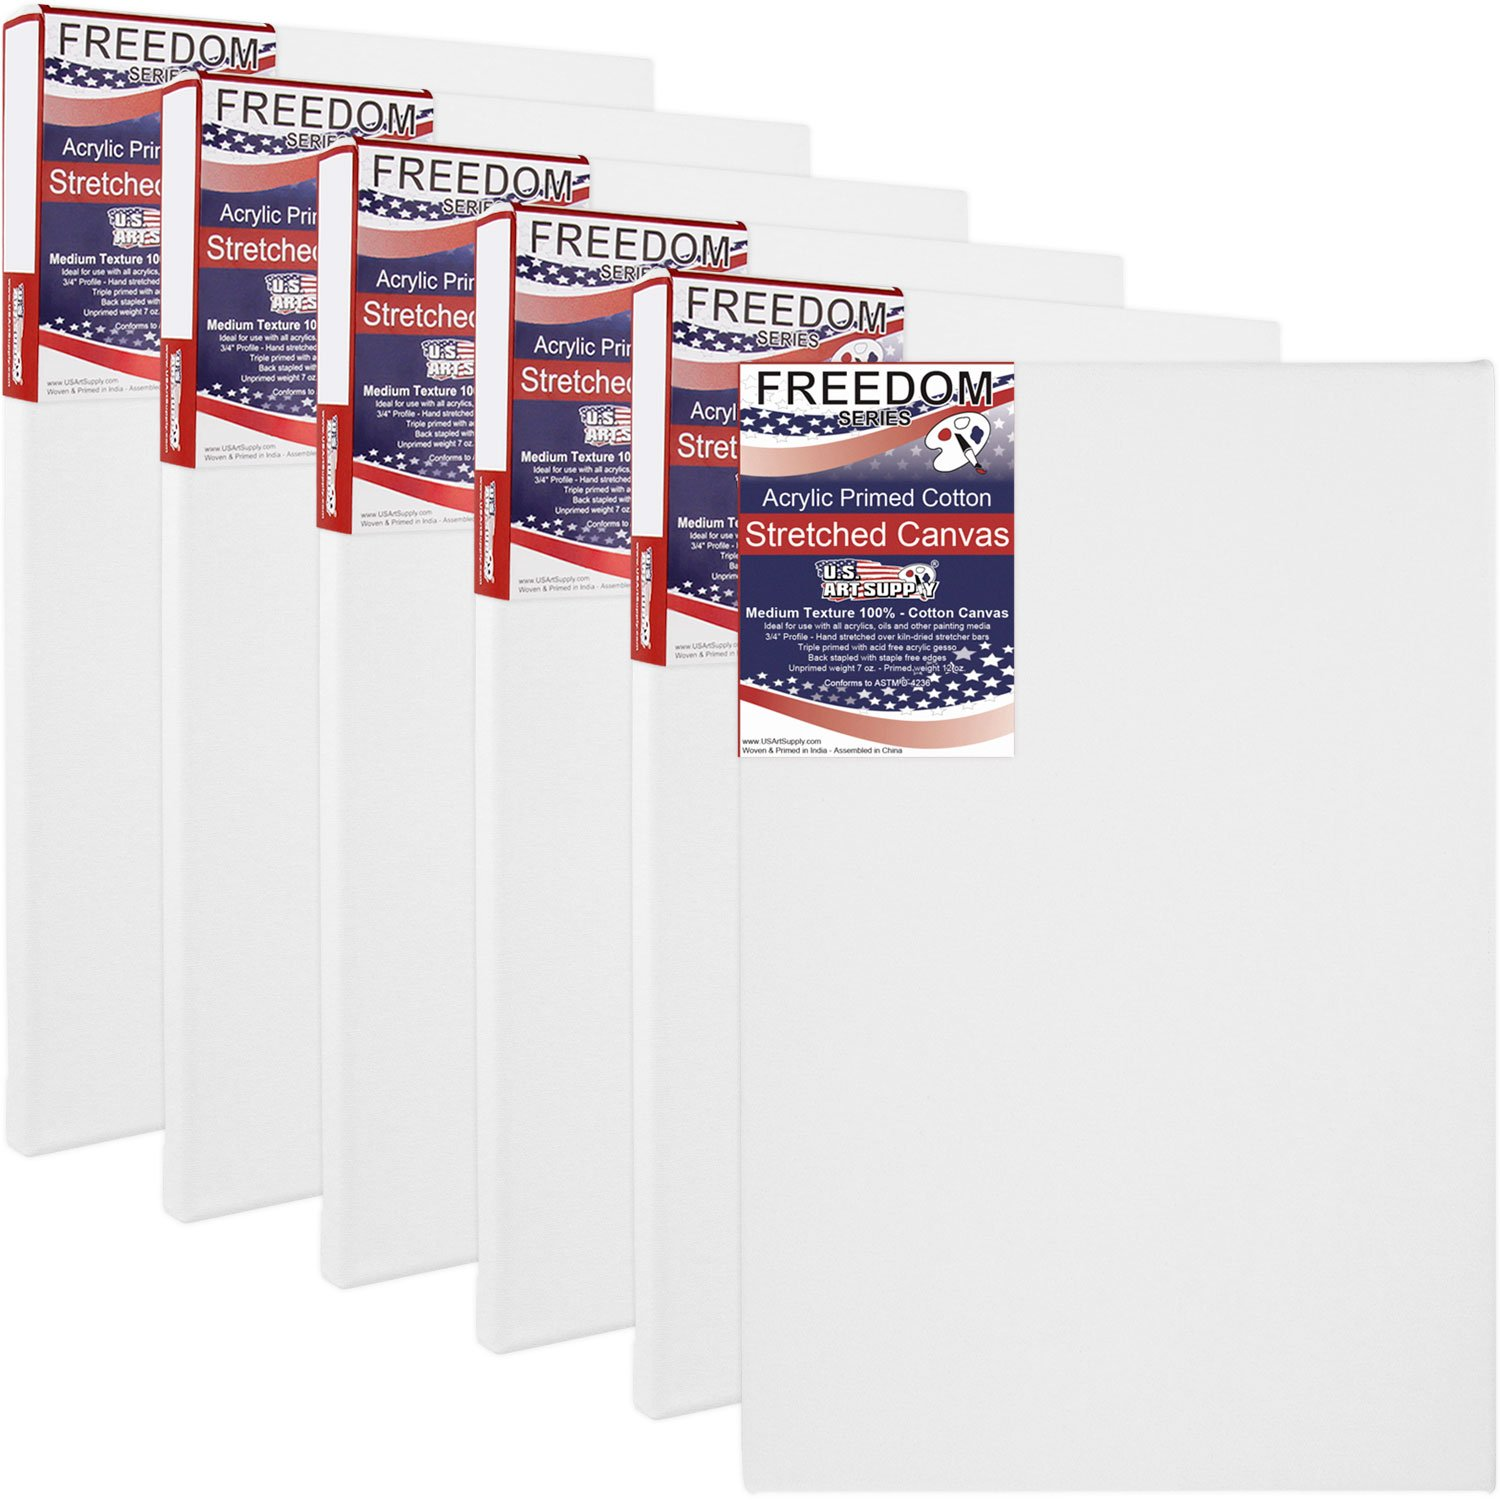 US Art Supply 20 X 24 inch Professional Quality Acid Free Stretched Canvas 6-Pack - 3/4 Profile 12 Ounce Primed Gesso - (1 Full Case of 6 Single Canvases)